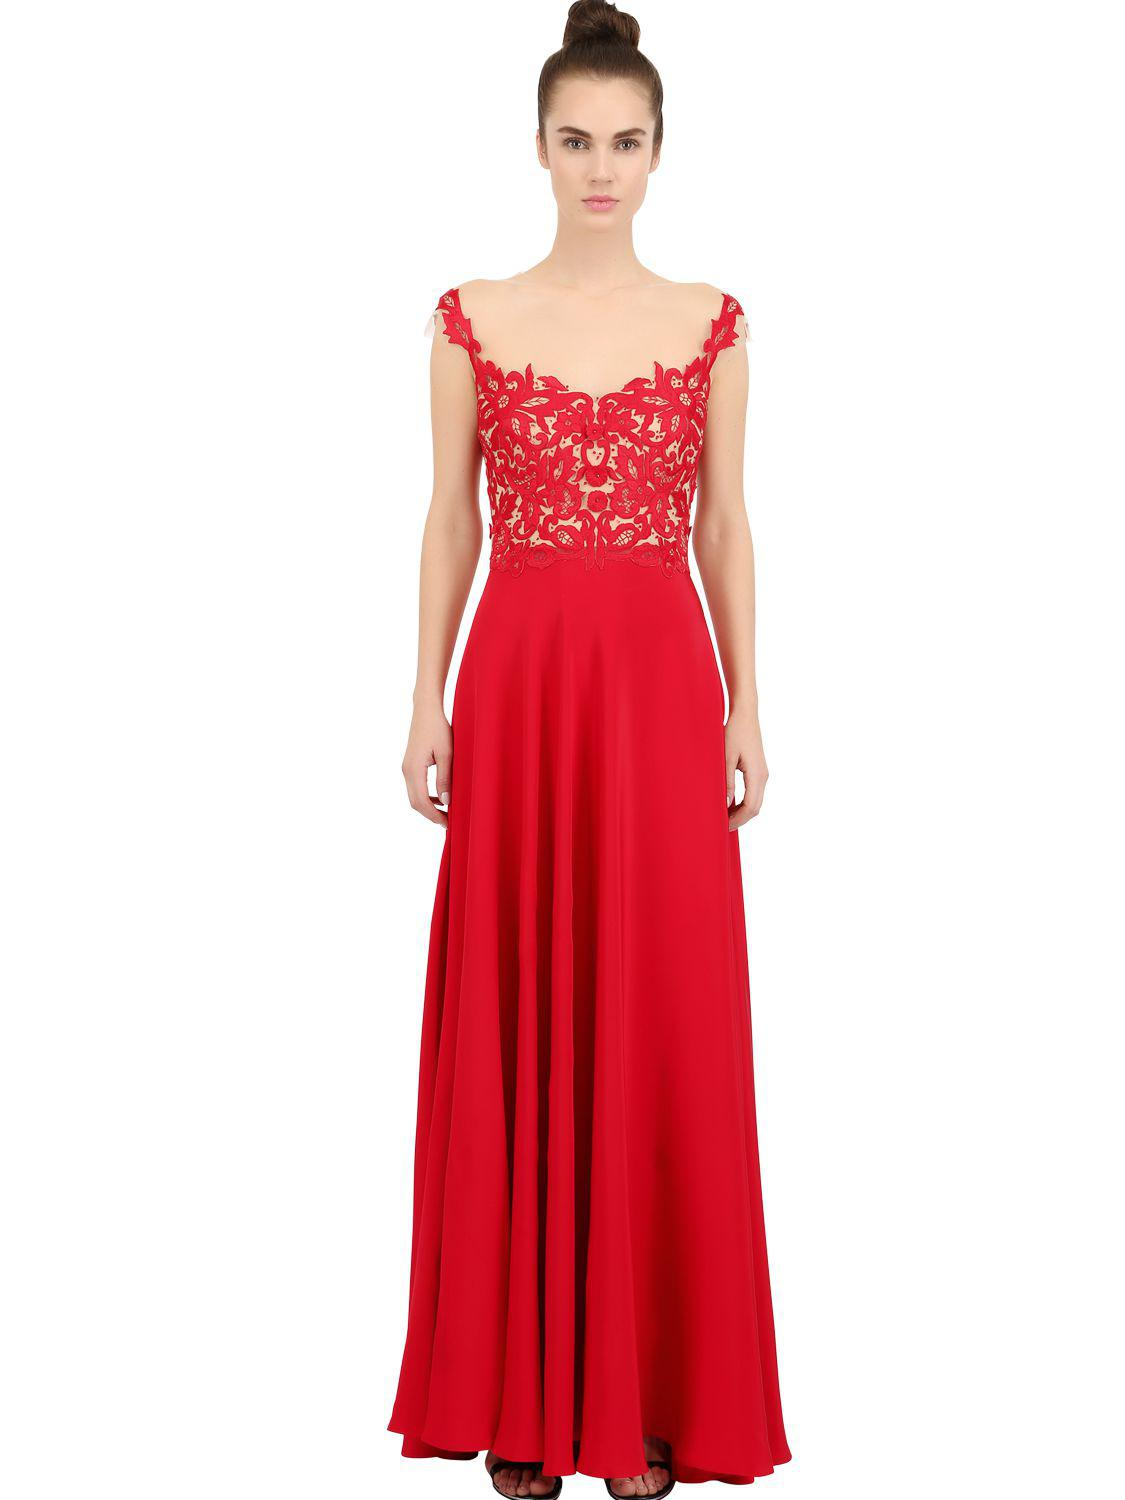 Reem Acra Embellished Applique Silk Faille High/low Gown in Red - Lyst